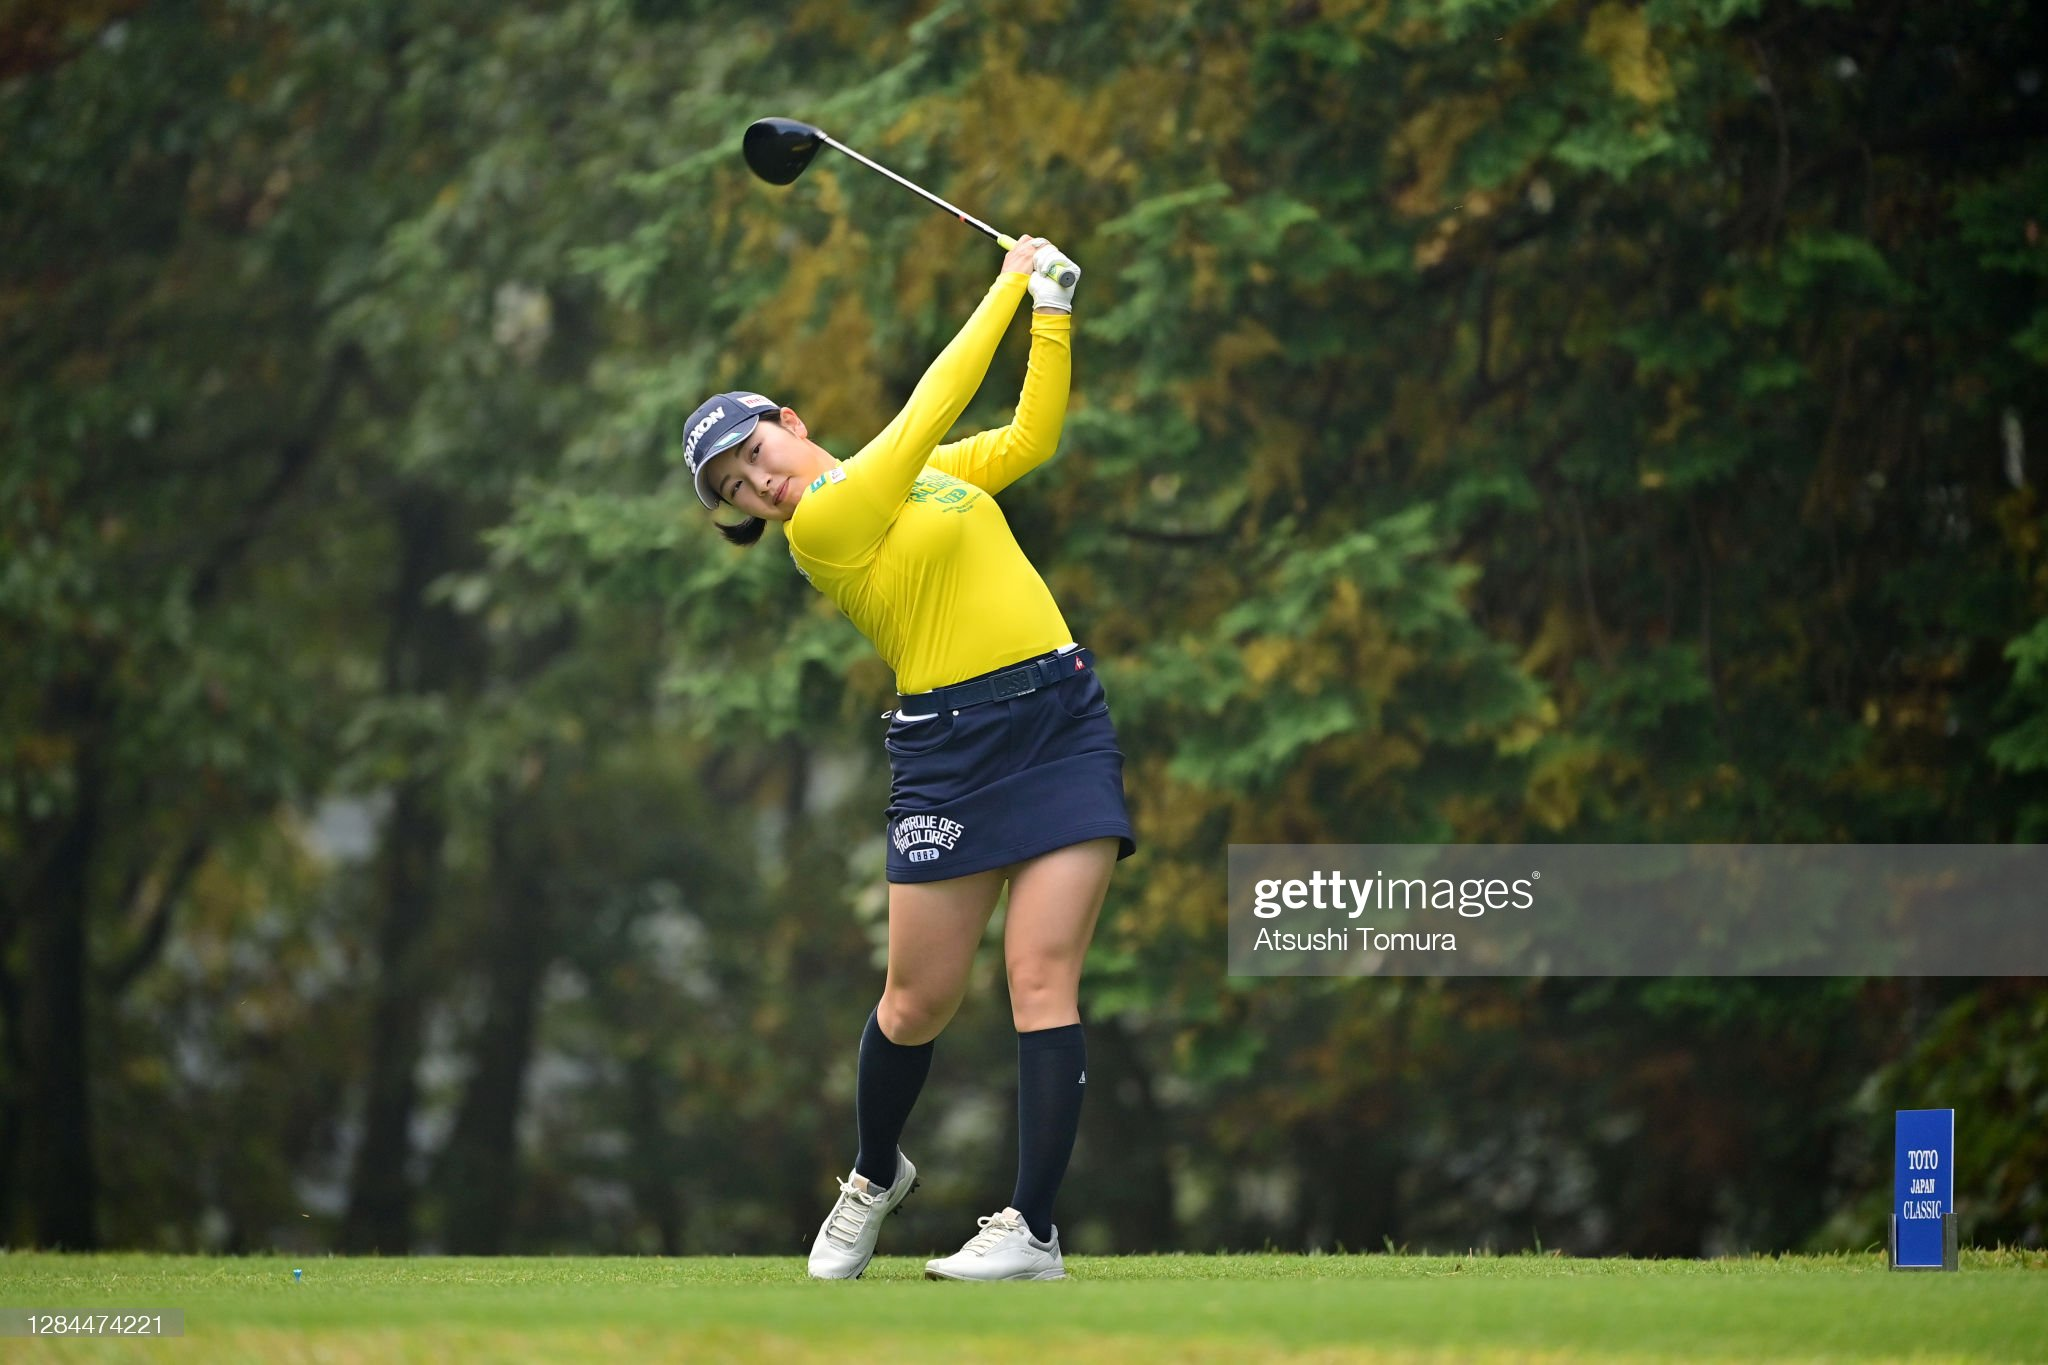 https://media.gettyimages.com/photos/sakura-koiwai-of-japan-hits-her-tee-shot-on-the-2nd-hole-during-the-picture-id1284474221?s=2048x2048